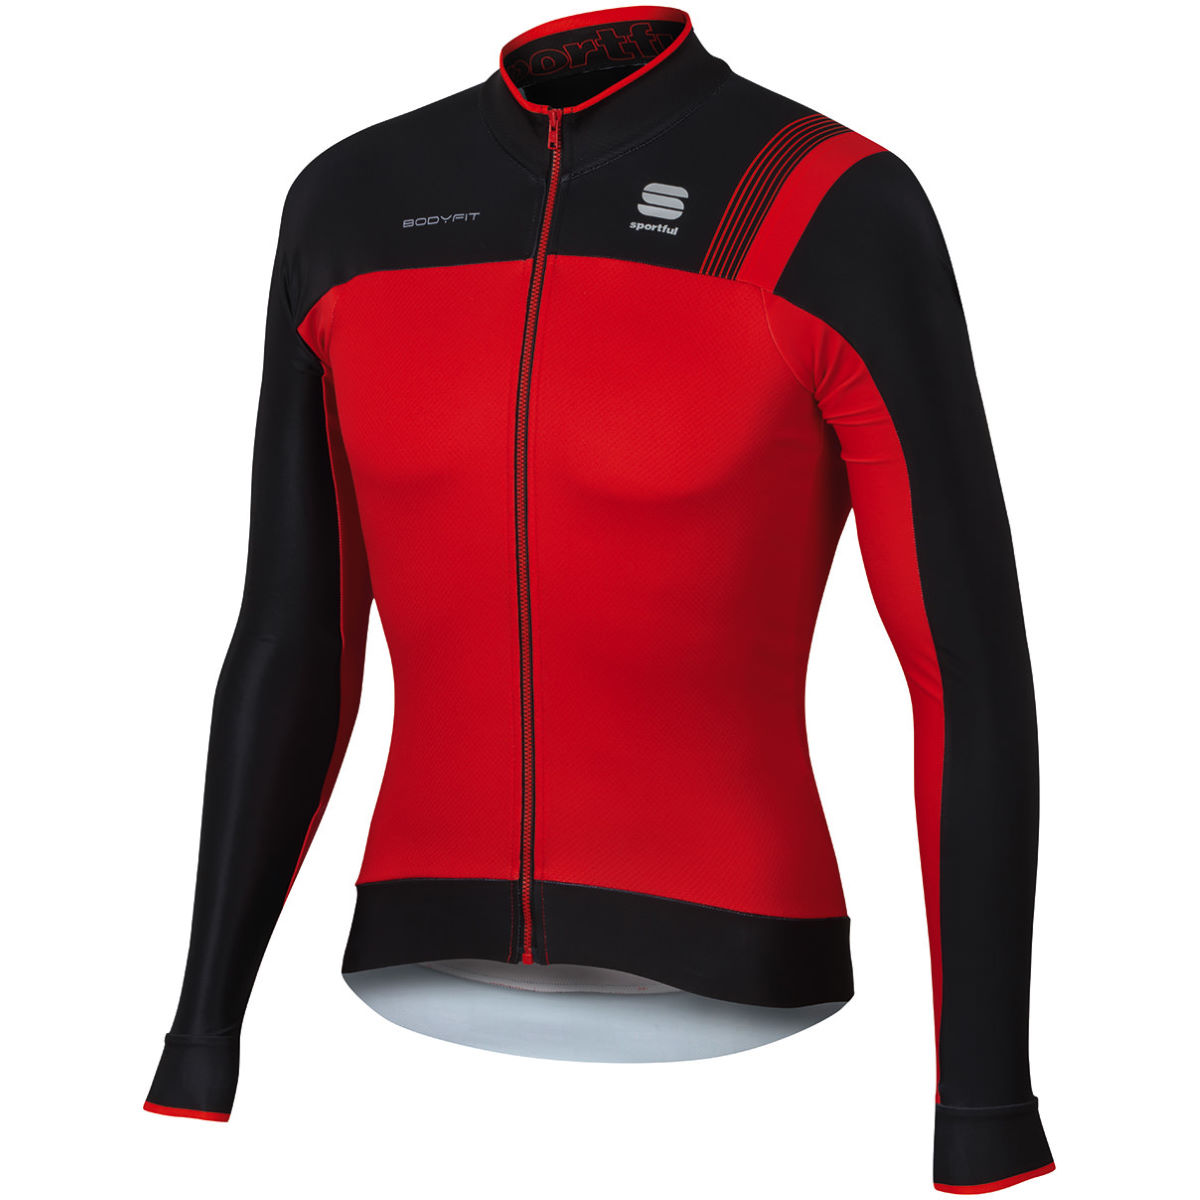 Maillot Sportful BodyFit Pro Thermal - XXL Red/Black/Fire Red